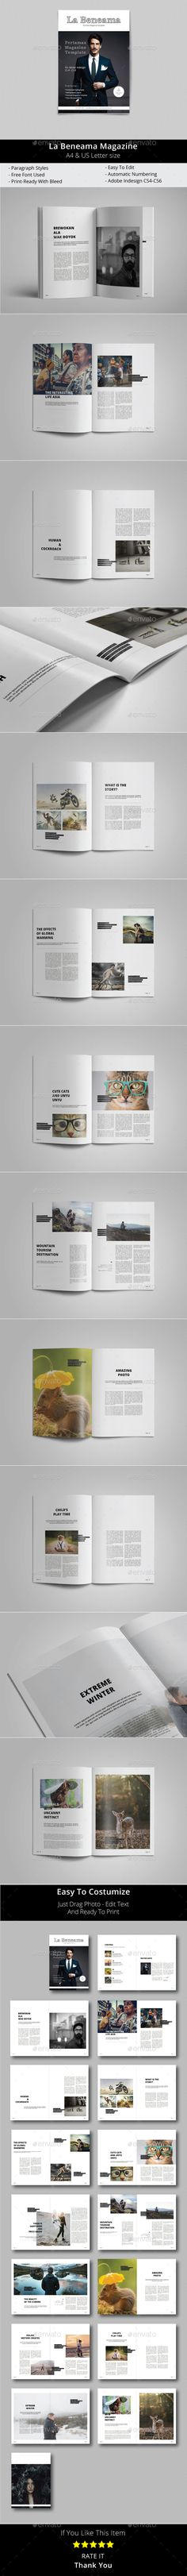 Magazine Cover page | Magazine covers, Magazines and Print templates